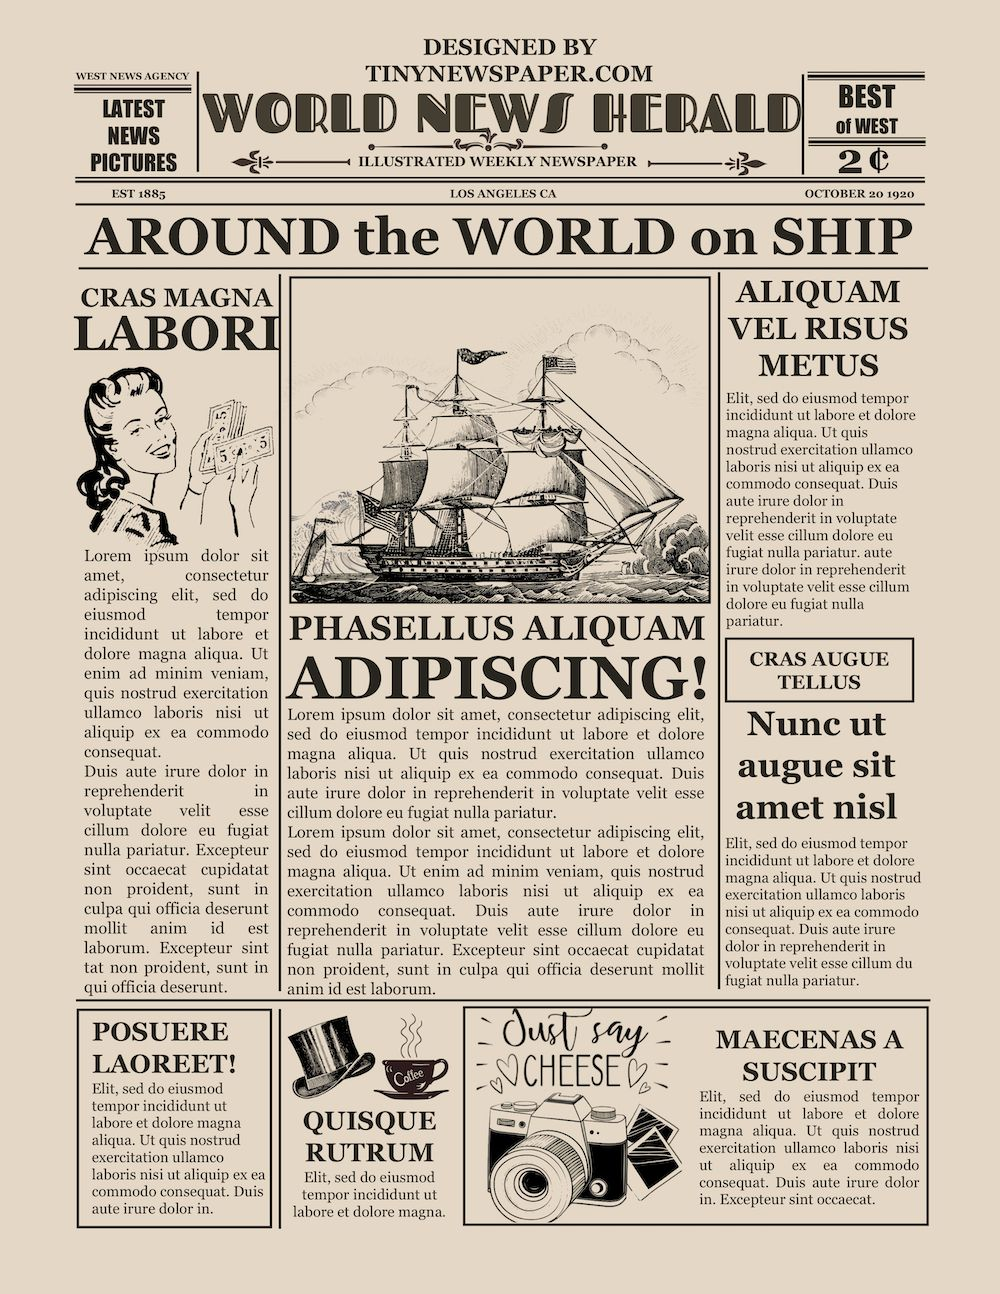 Old Newspaper Template Word With Old Newspaper Template Word Free Cumed Org Newspaper Template Newspaper Template Word Old Newspaper